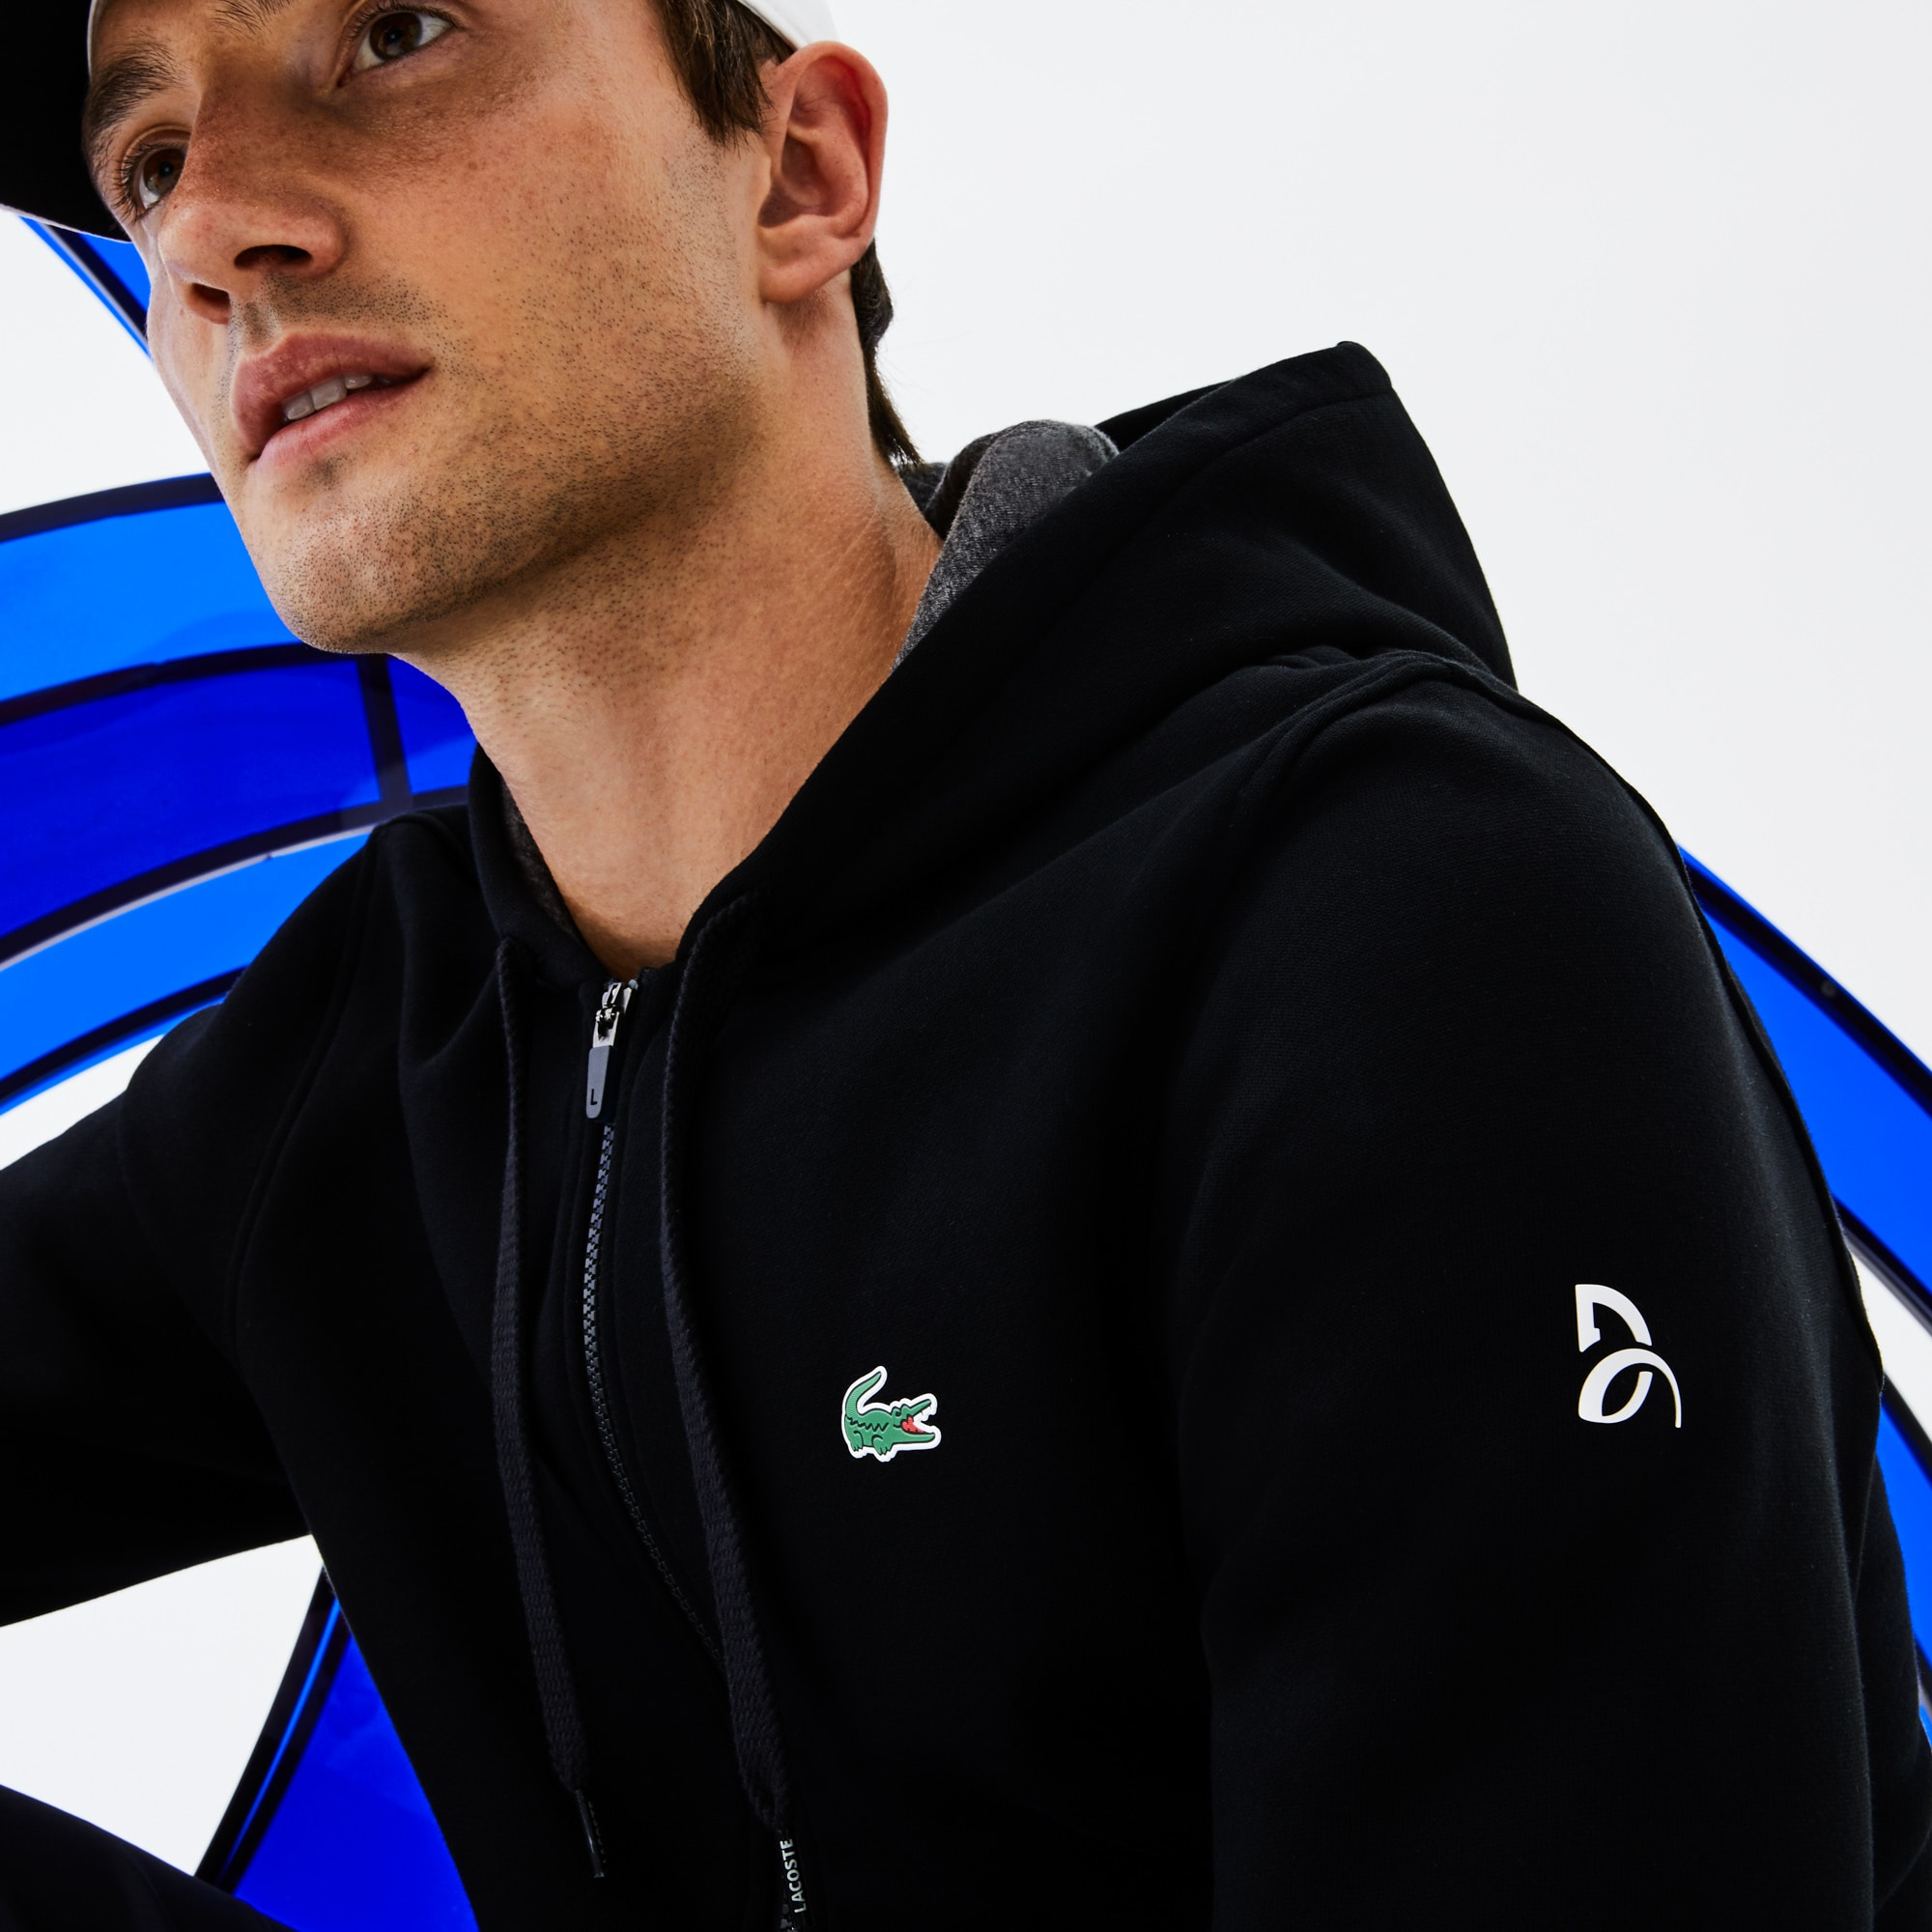 Men's SPORT Technical Fleece Hooded Zip Sweatshirt - Lacoste x Novak Djokovic Off Court Premium Edition